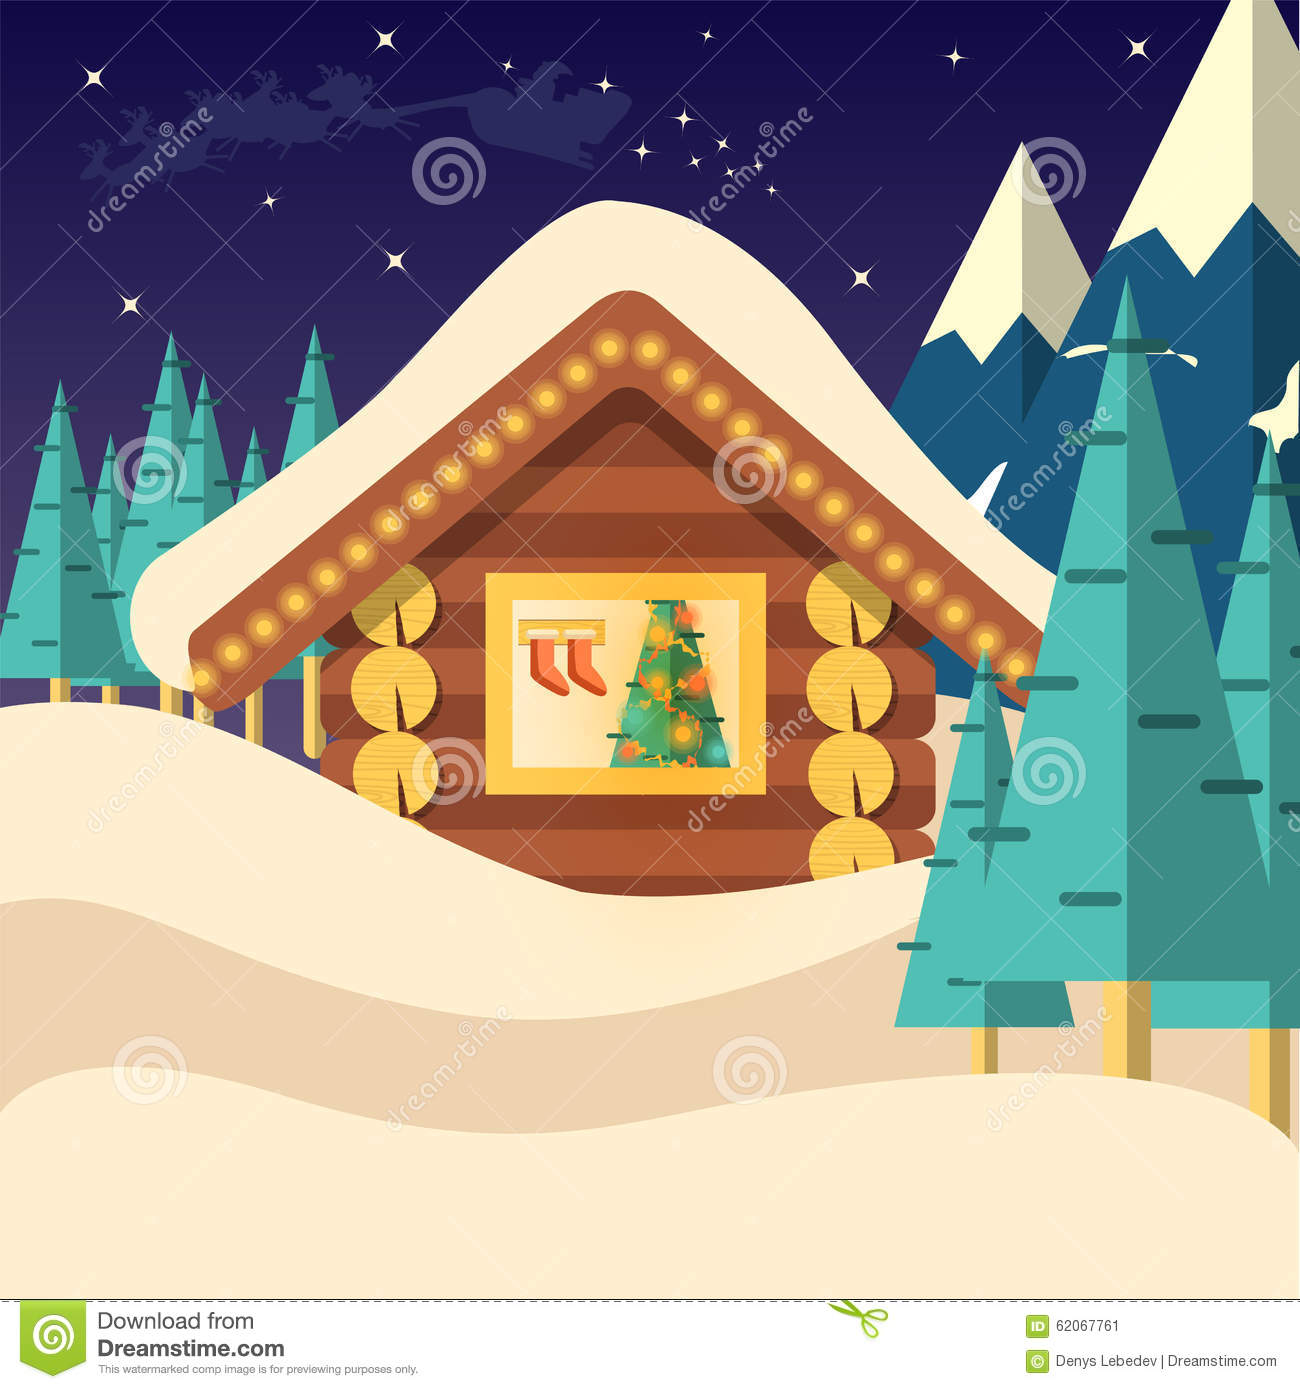 Christmas Room Stock Vector Image Of Illuminated: Christmas Eve Background Vector Illustration With House